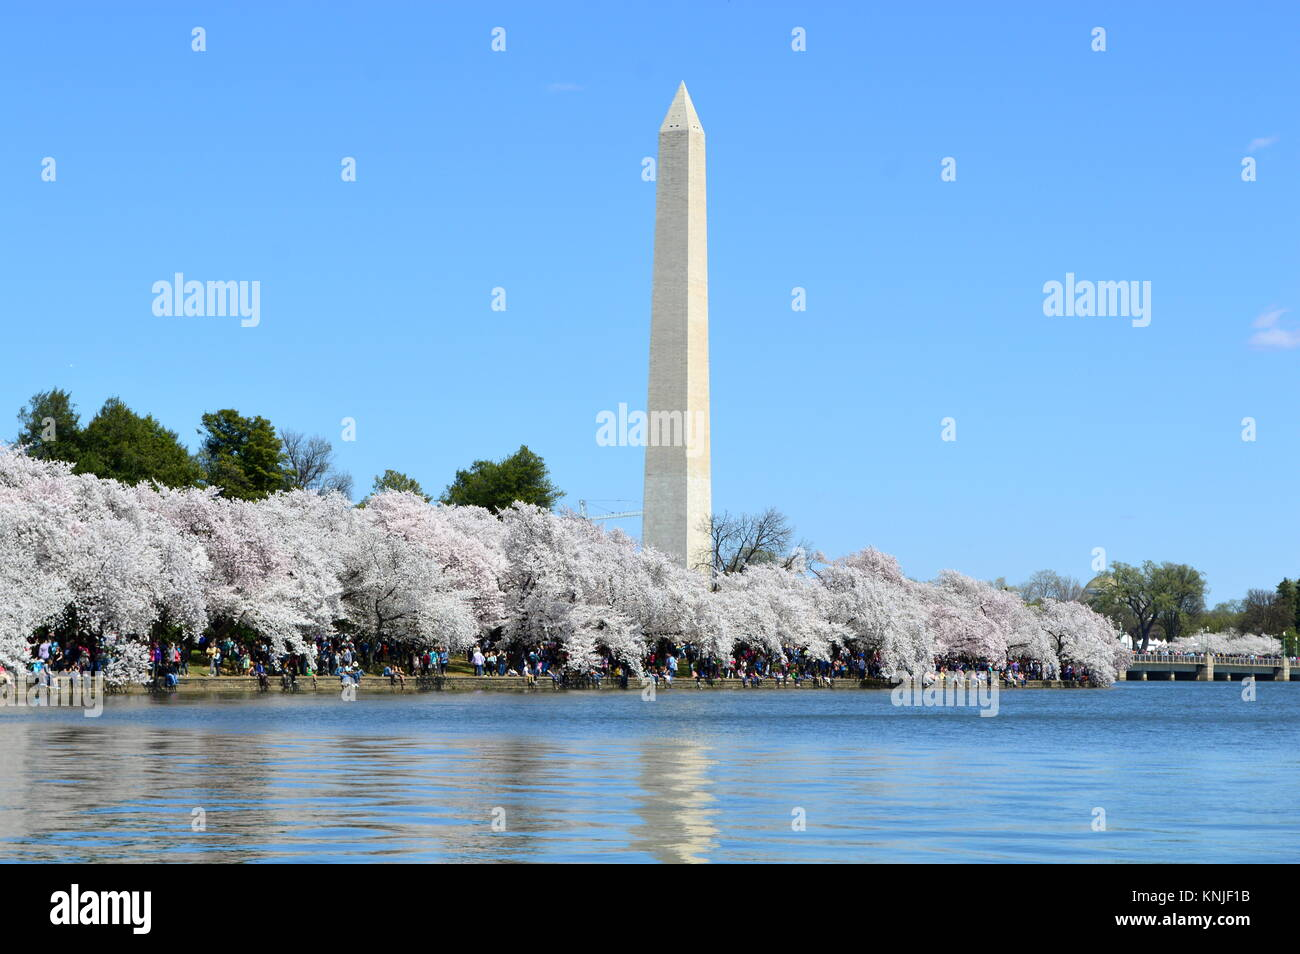 Washington DC, Columbia, USA - April 11, 2015: Washington-DC-Monument-cherry-blossom - Stock Image